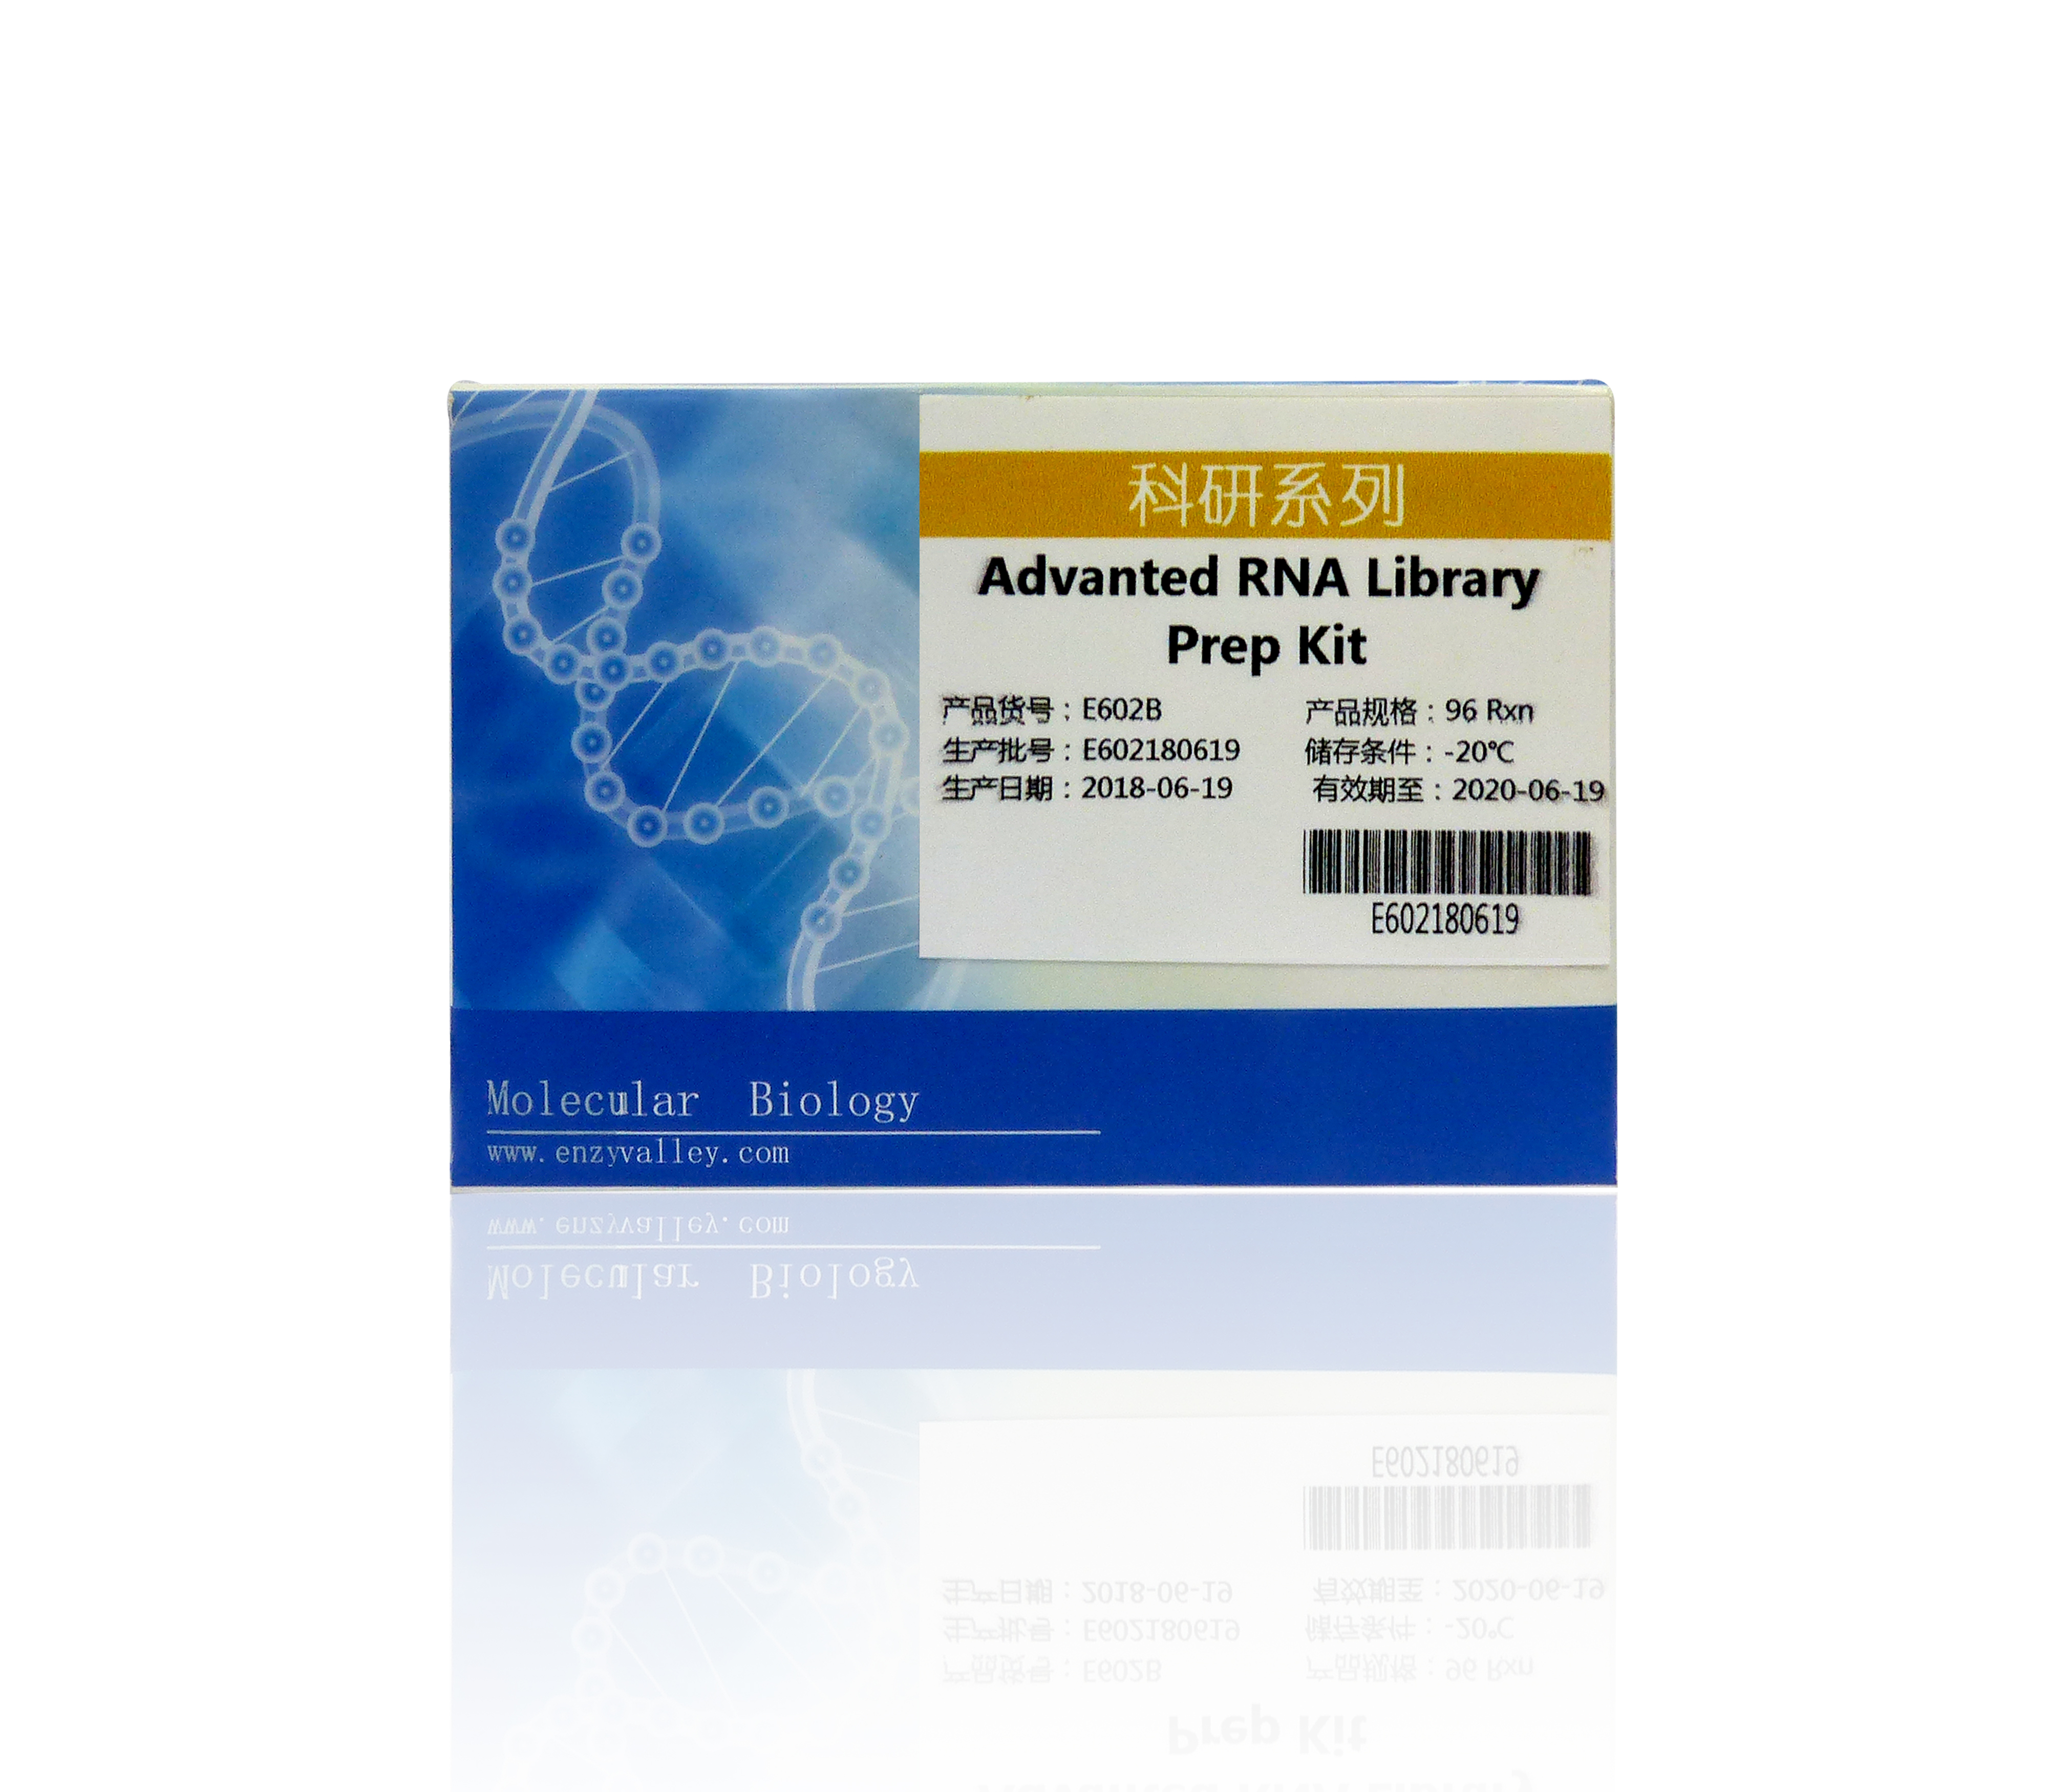 RNA文库构建试剂盒:Advanted RNA Library Prep Kit